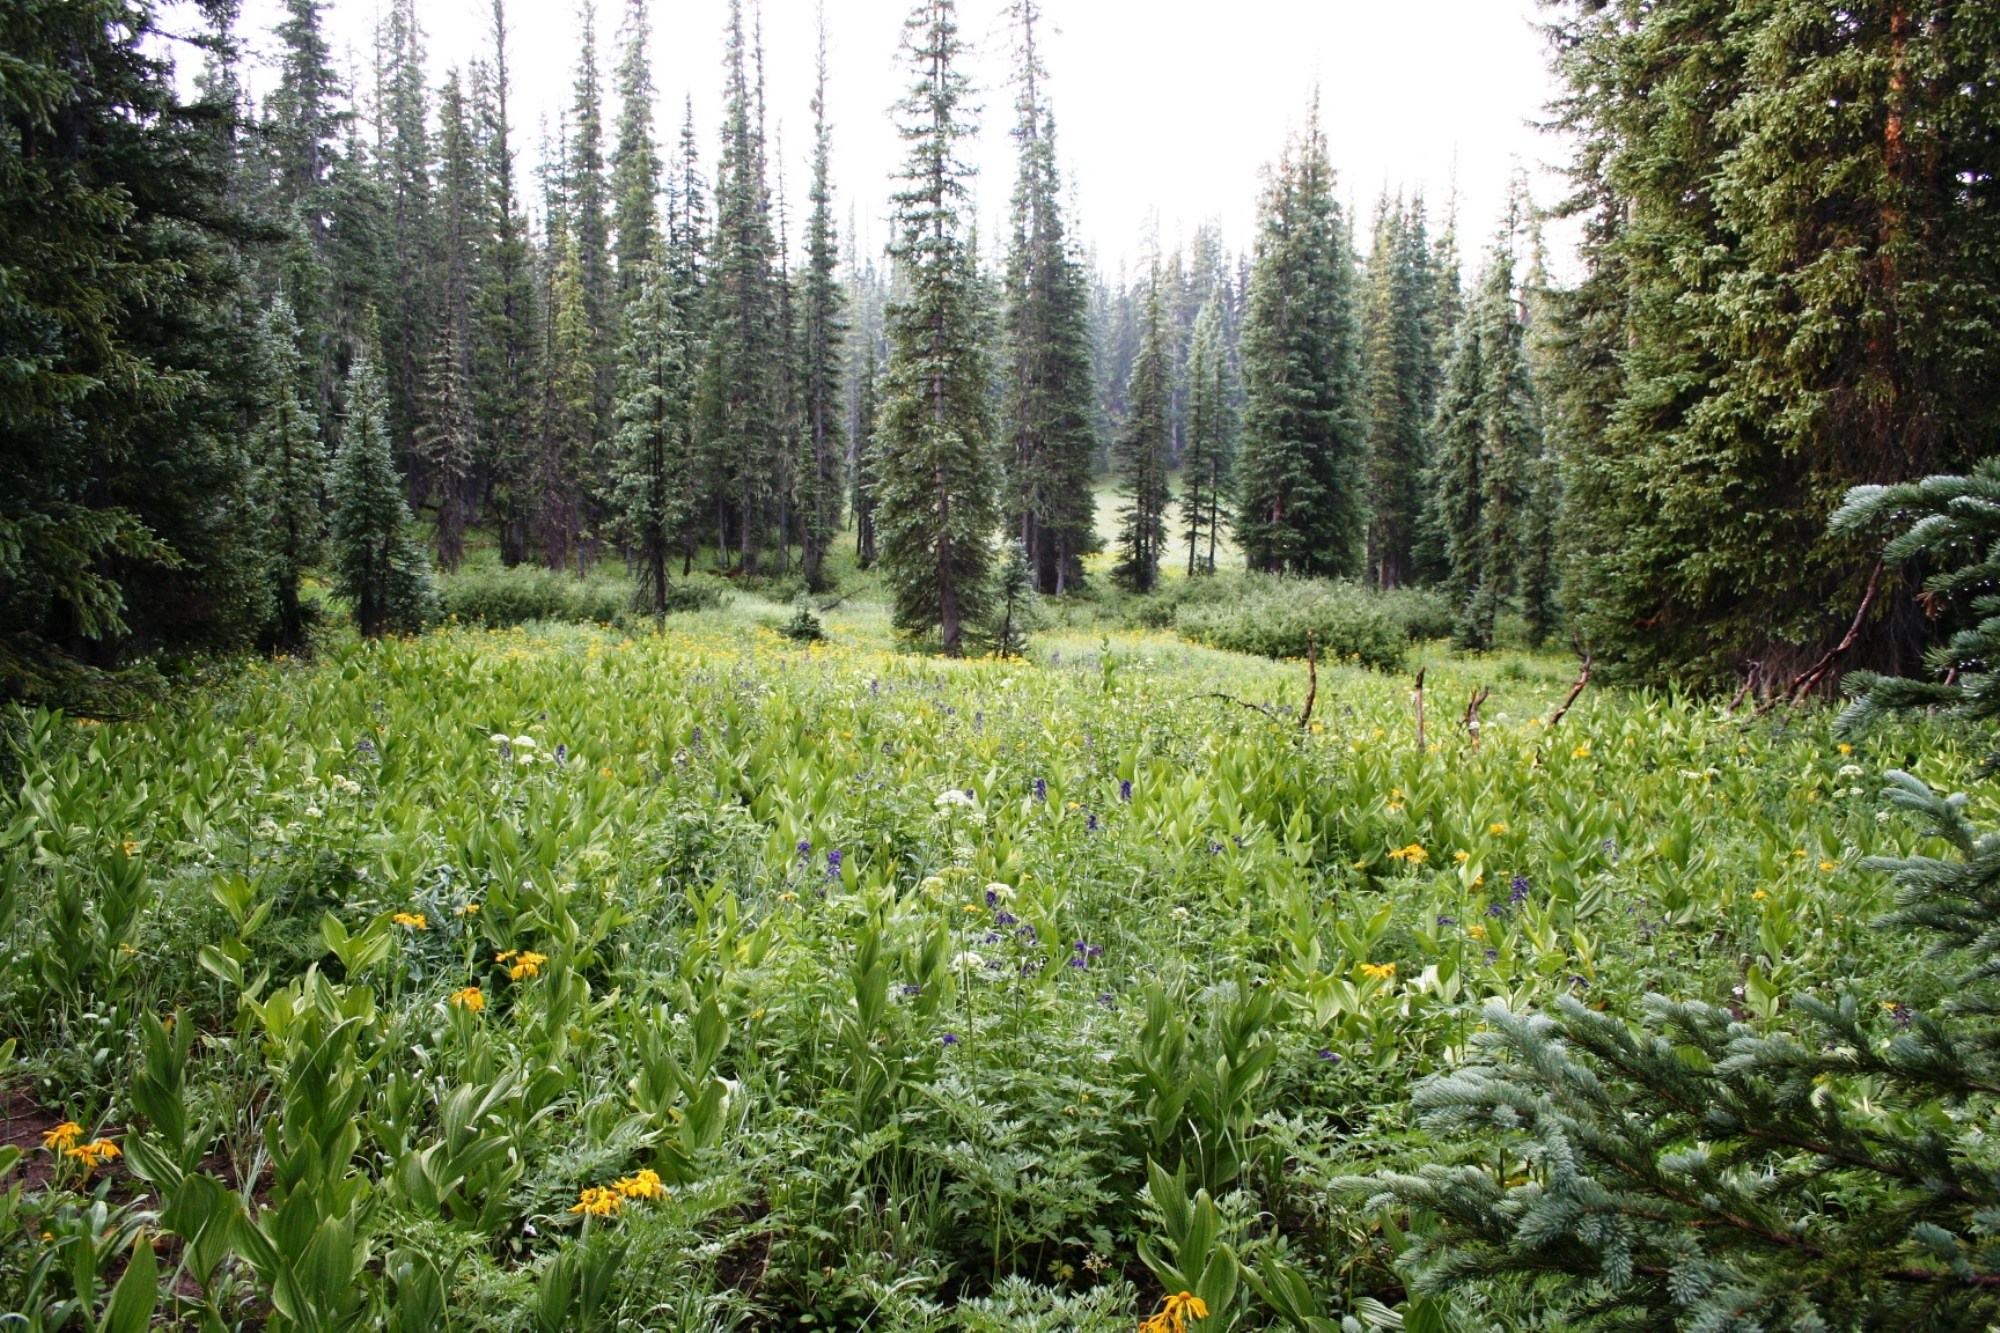 Land for Sale at Incomparable Mining Parcel 4236 Mineral Survey Crested Butte, Colorado 81224 United States